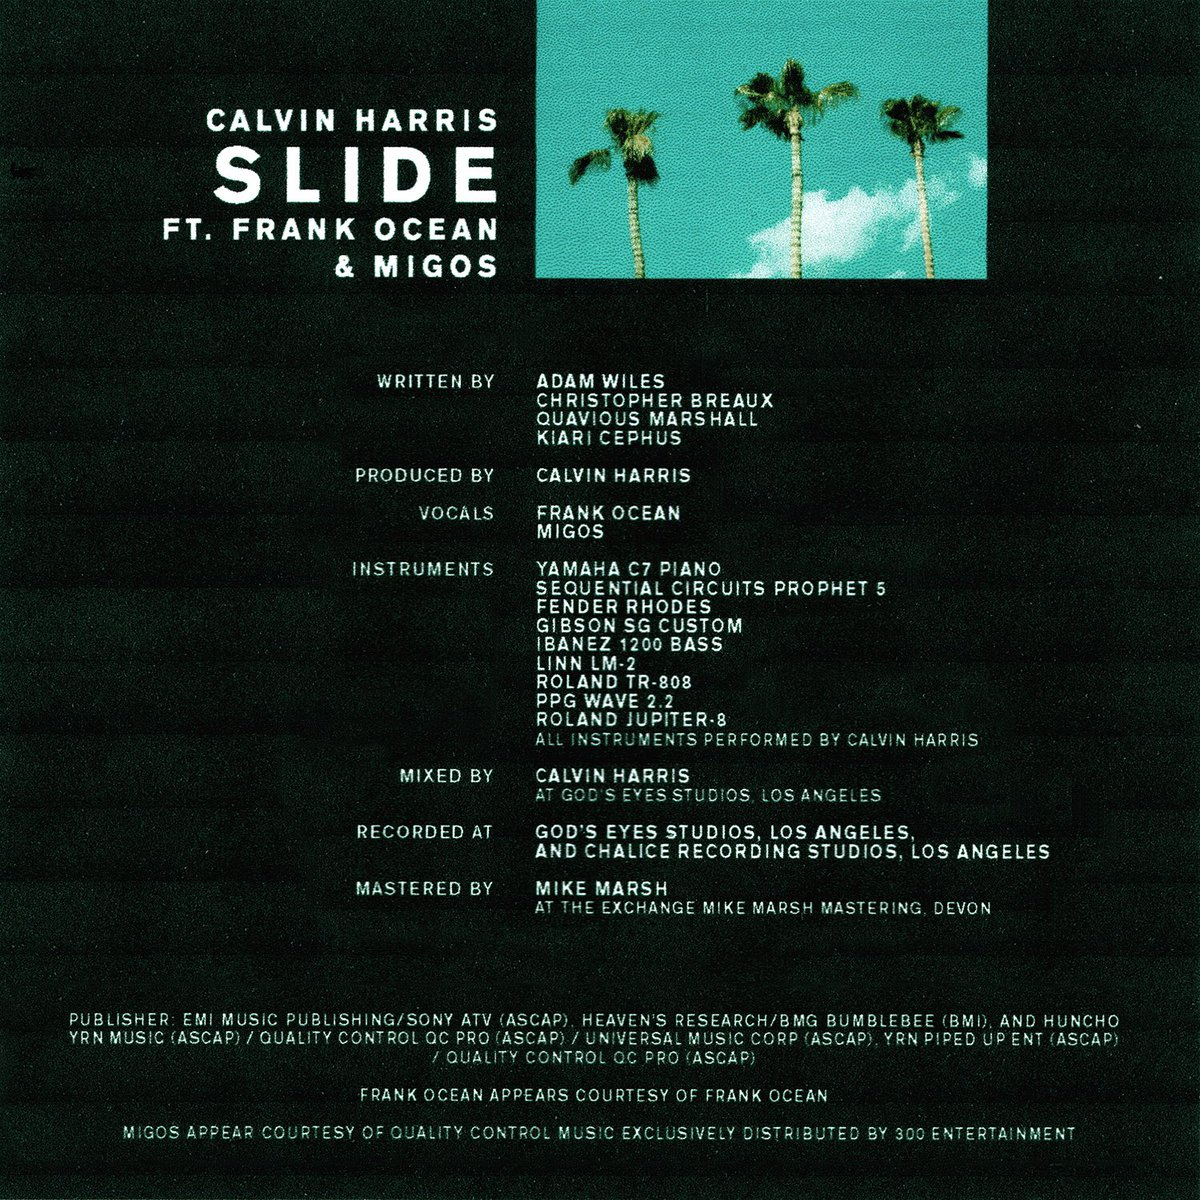 Calvin Harris x Frank Ocean x Migos Finally Introduce 'Slide' Joint Single C5No152VUAIZfVu